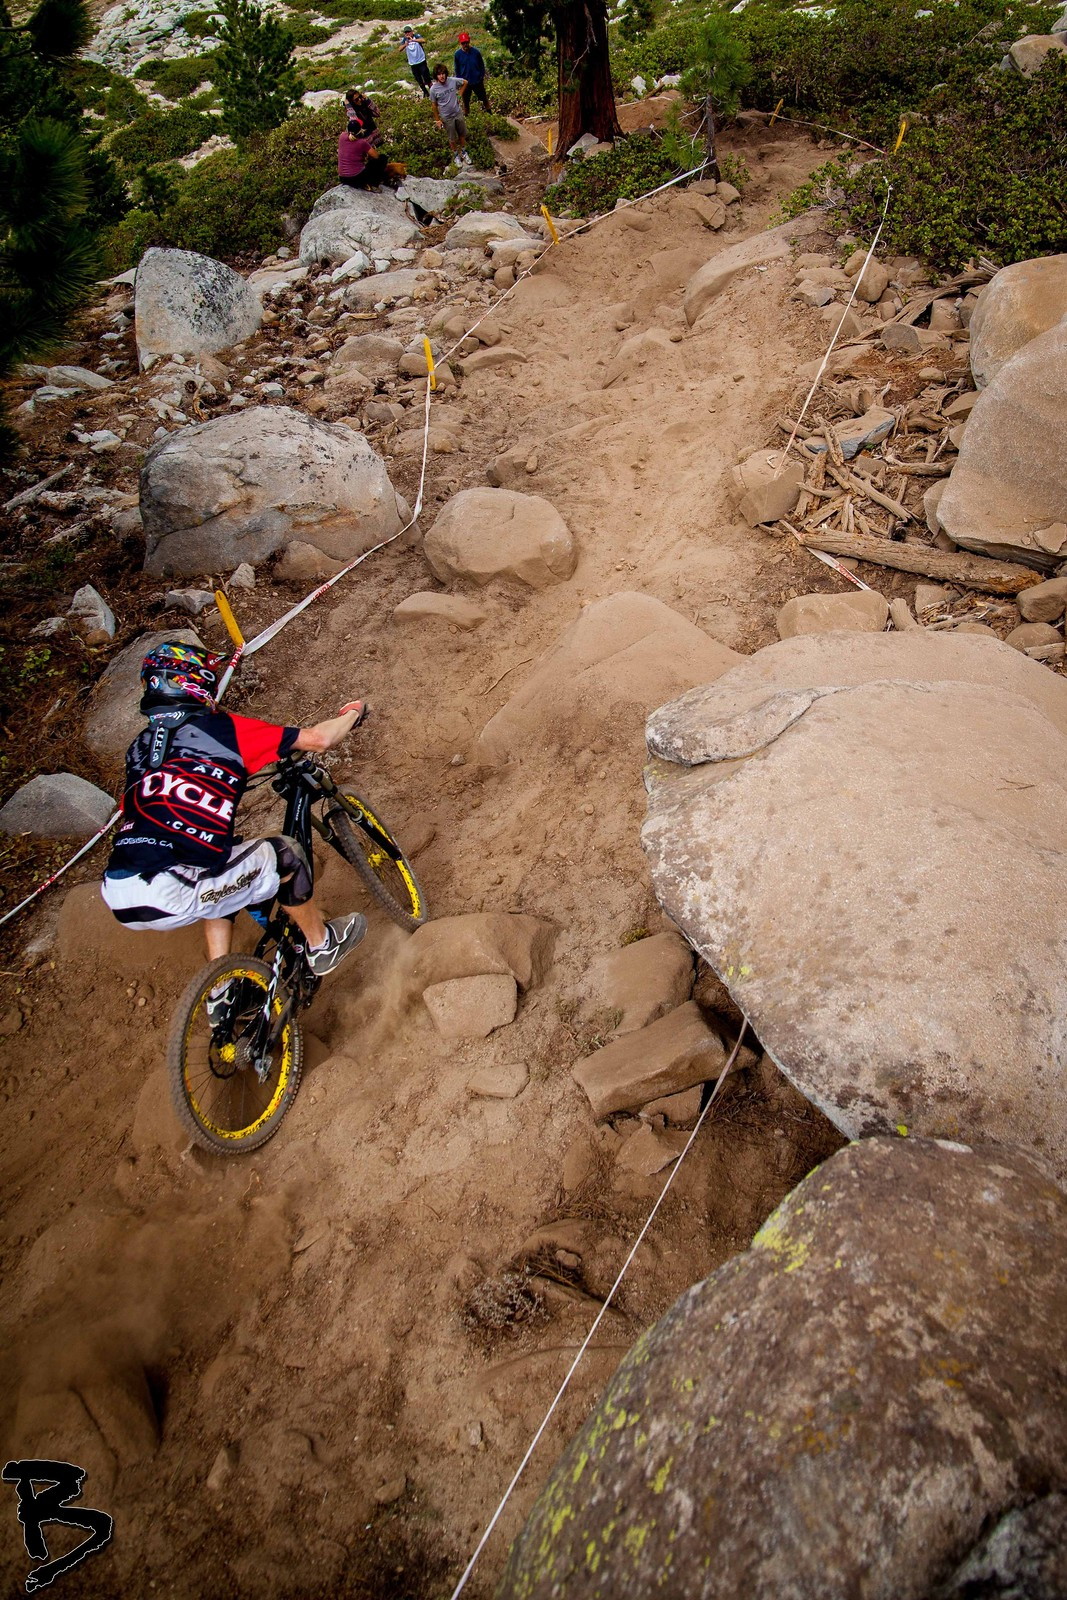 Vance Descends The Rocks - GnarHuck - Mountain Biking Pictures - Vital MTB